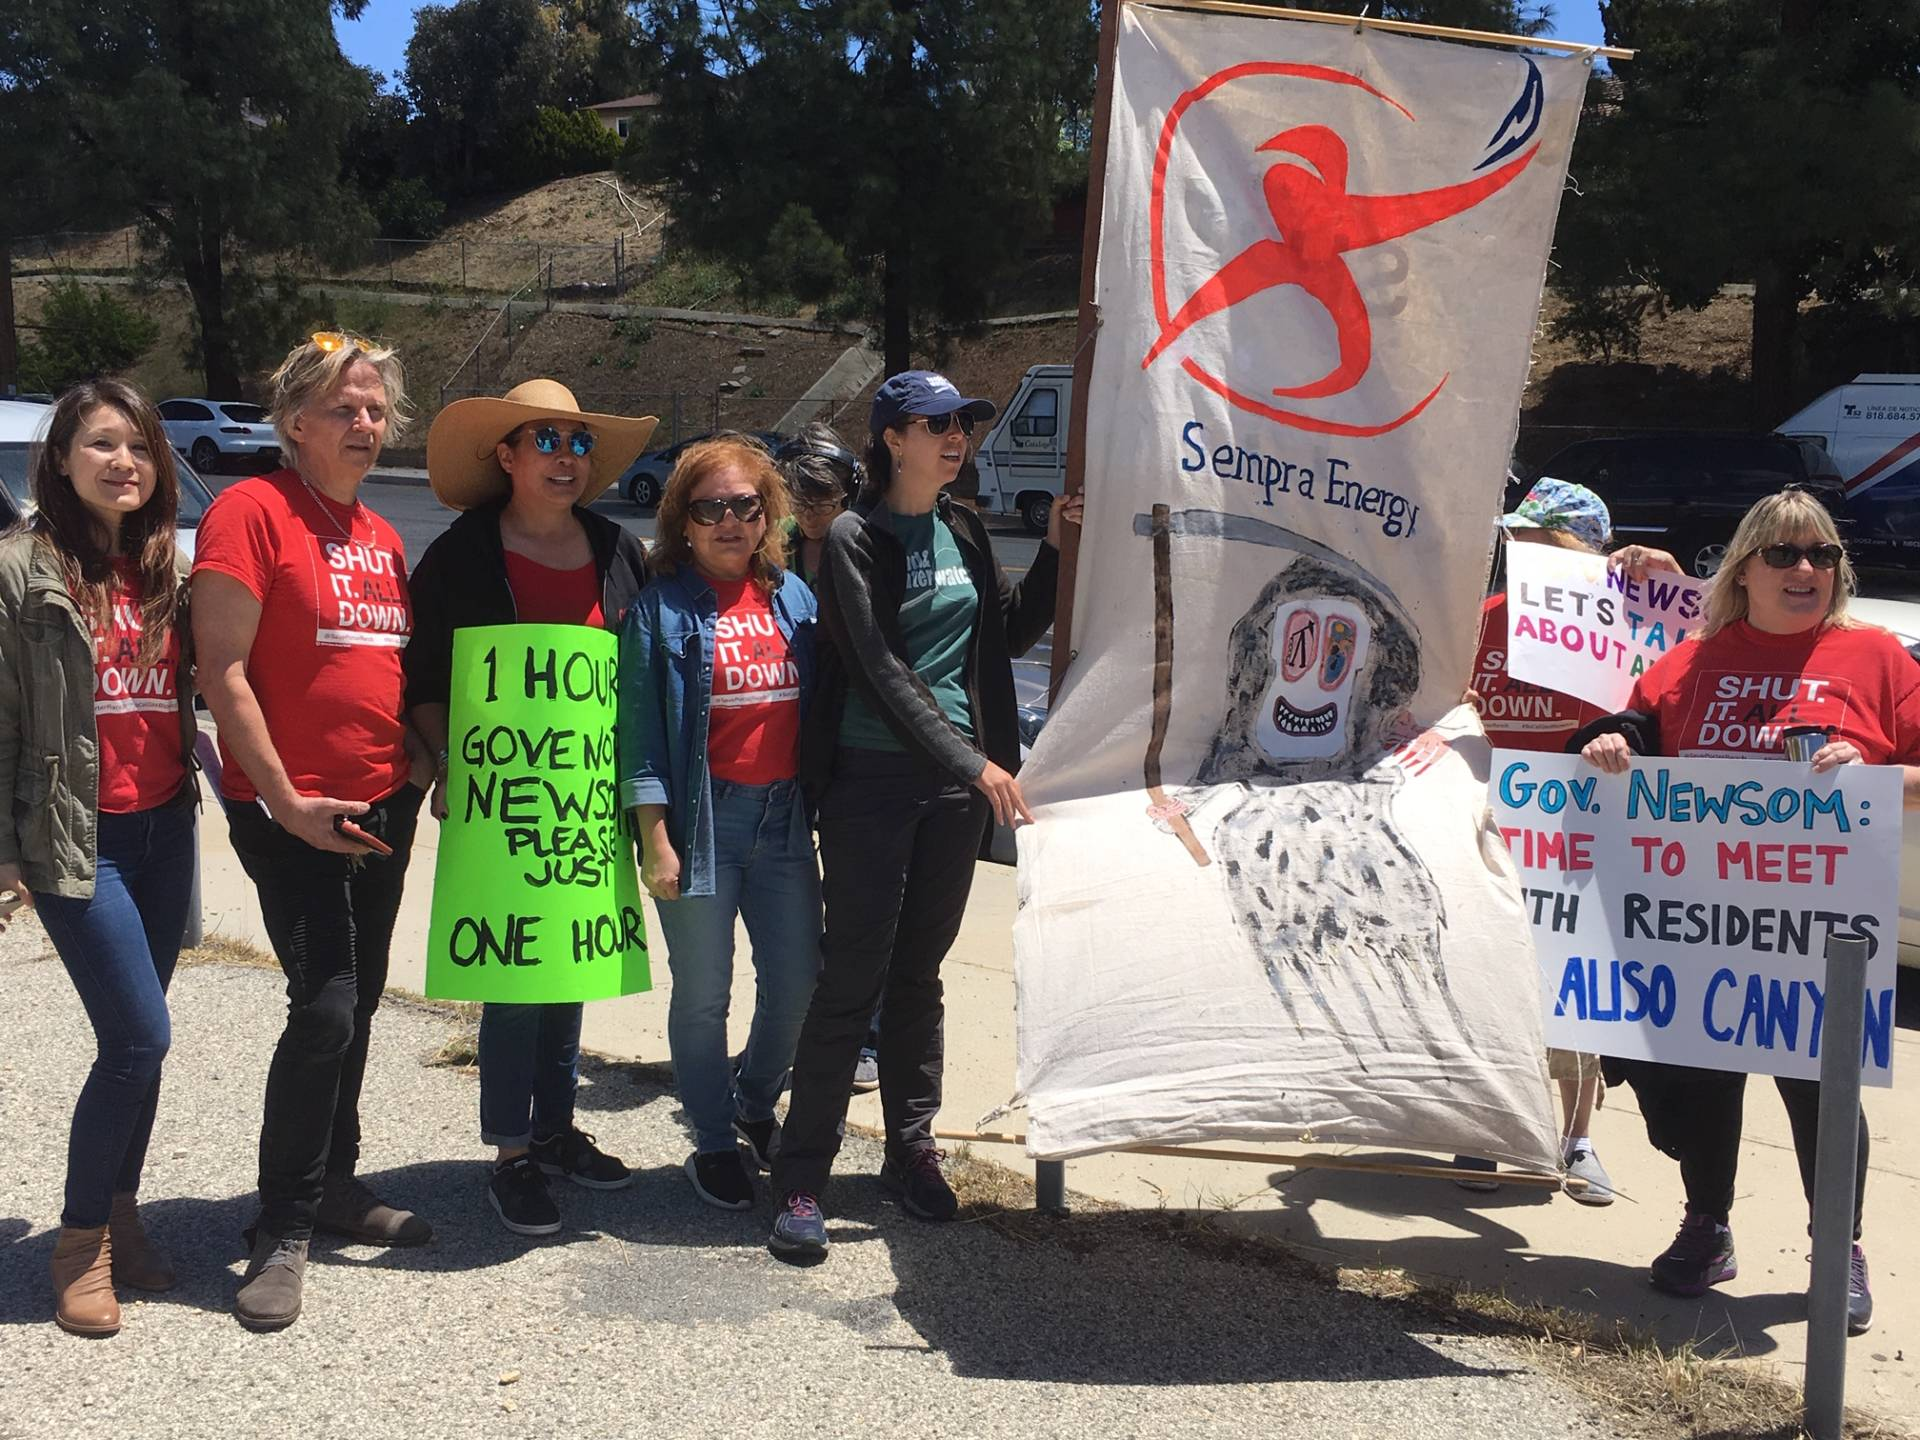 Residents Renew Calls to Shut Down Gas Facility After SoCalGas Blamed for Aliso Canyon Leak